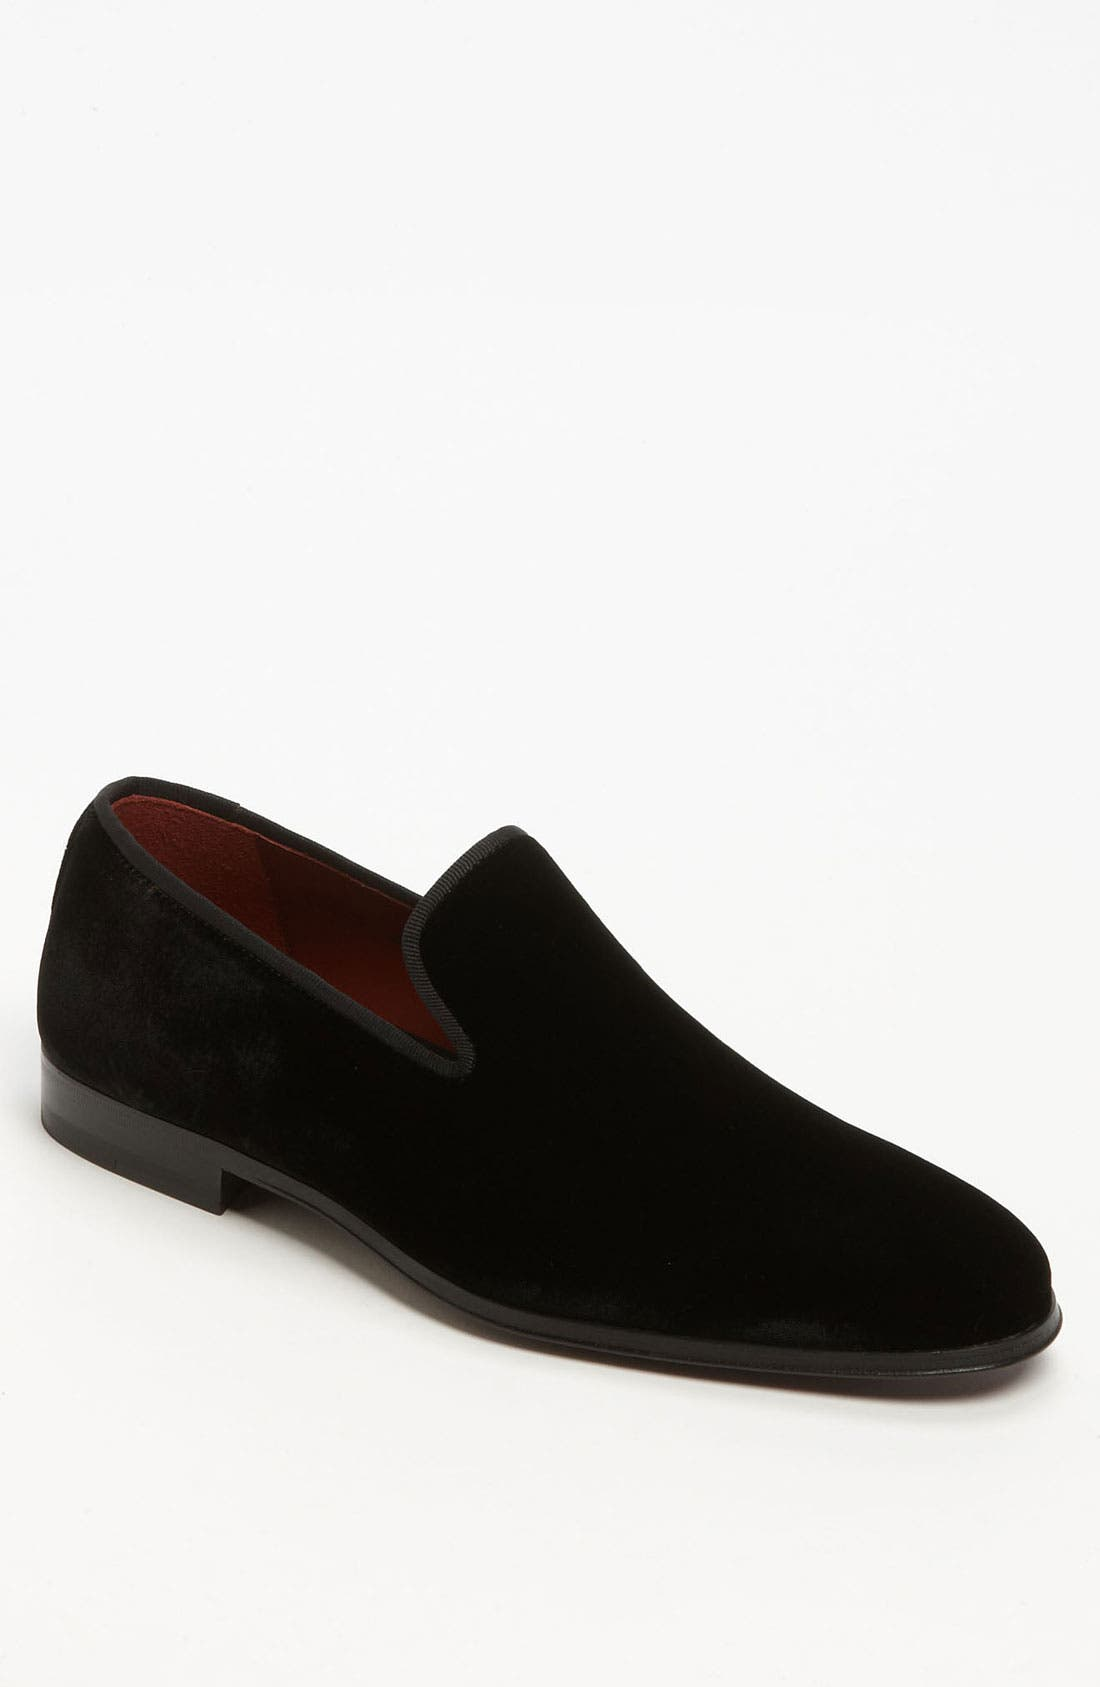 Discussion on this topic: 5 Best Driving Shoes For Men, 5-best-driving-shoes-for-men/